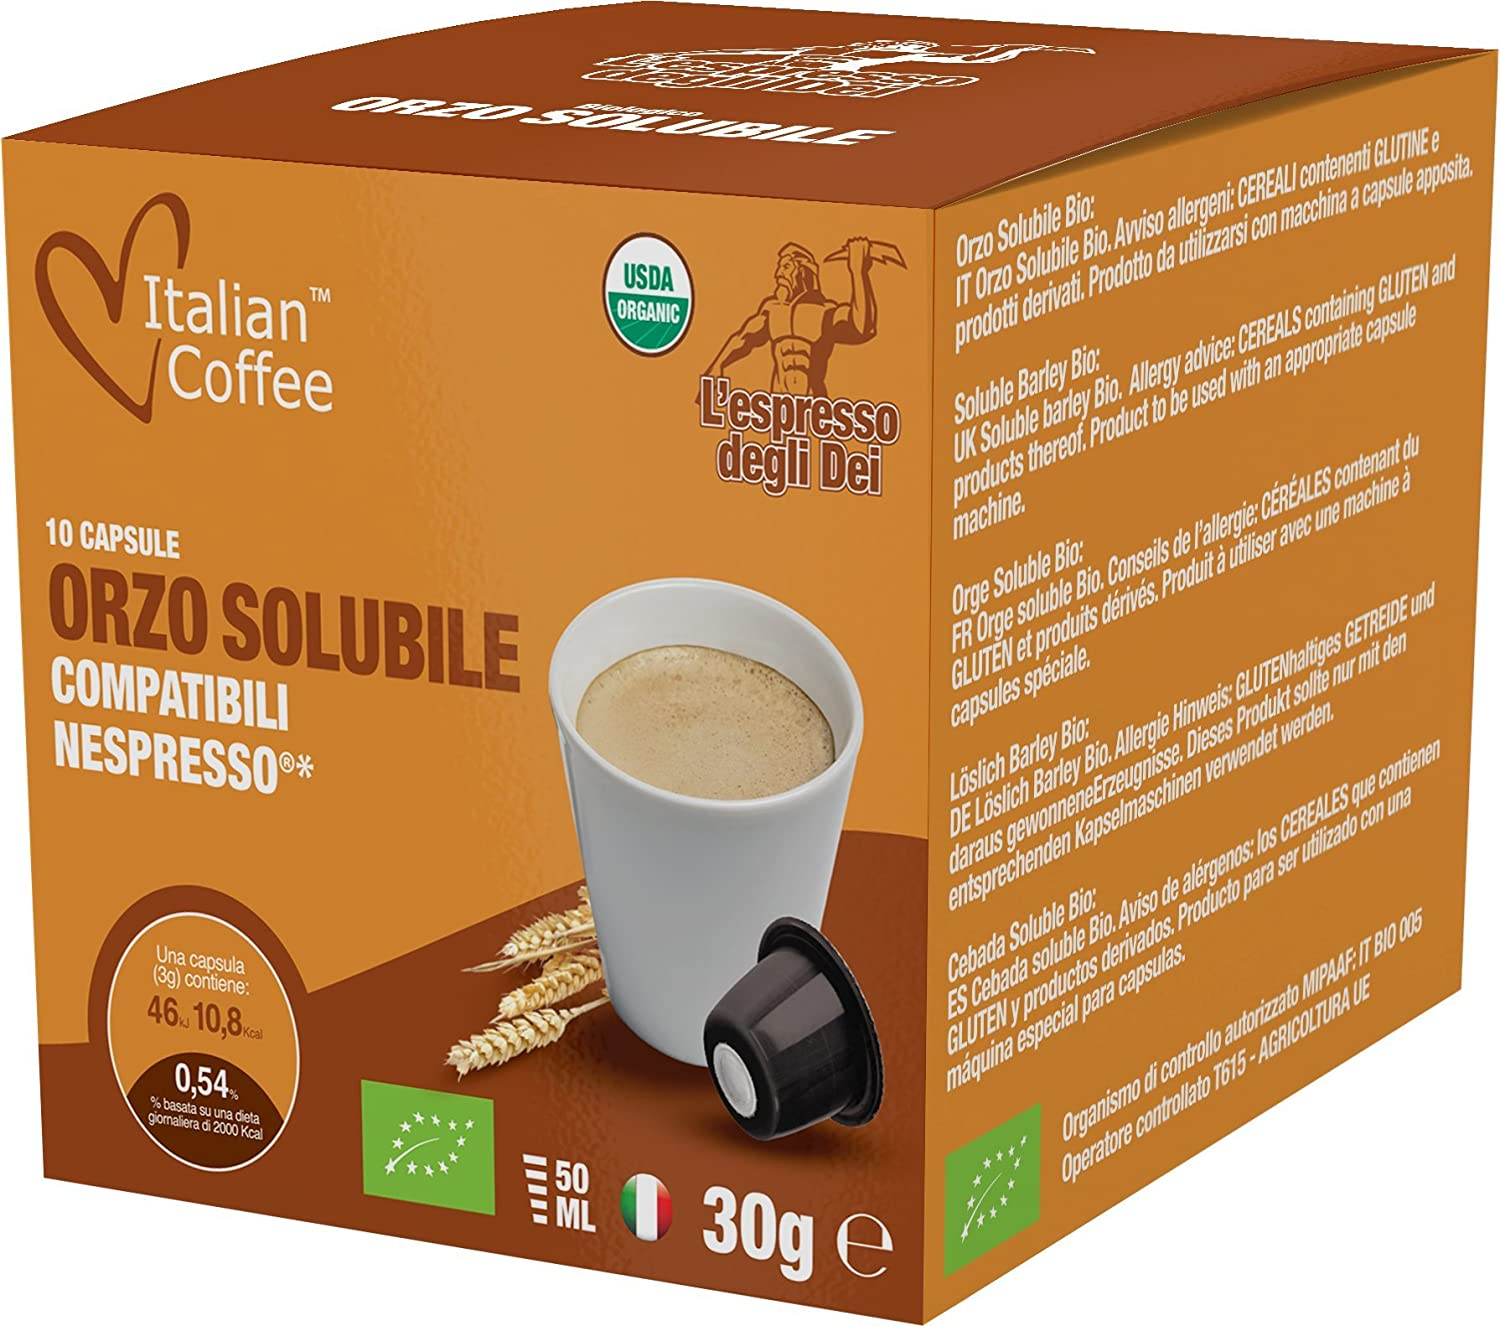 Barley capsules, Nespresso compatible pods, by Italian Coffee (Barley Drink, 120 pods): Amazon.com: Grocery & Gourmet Food